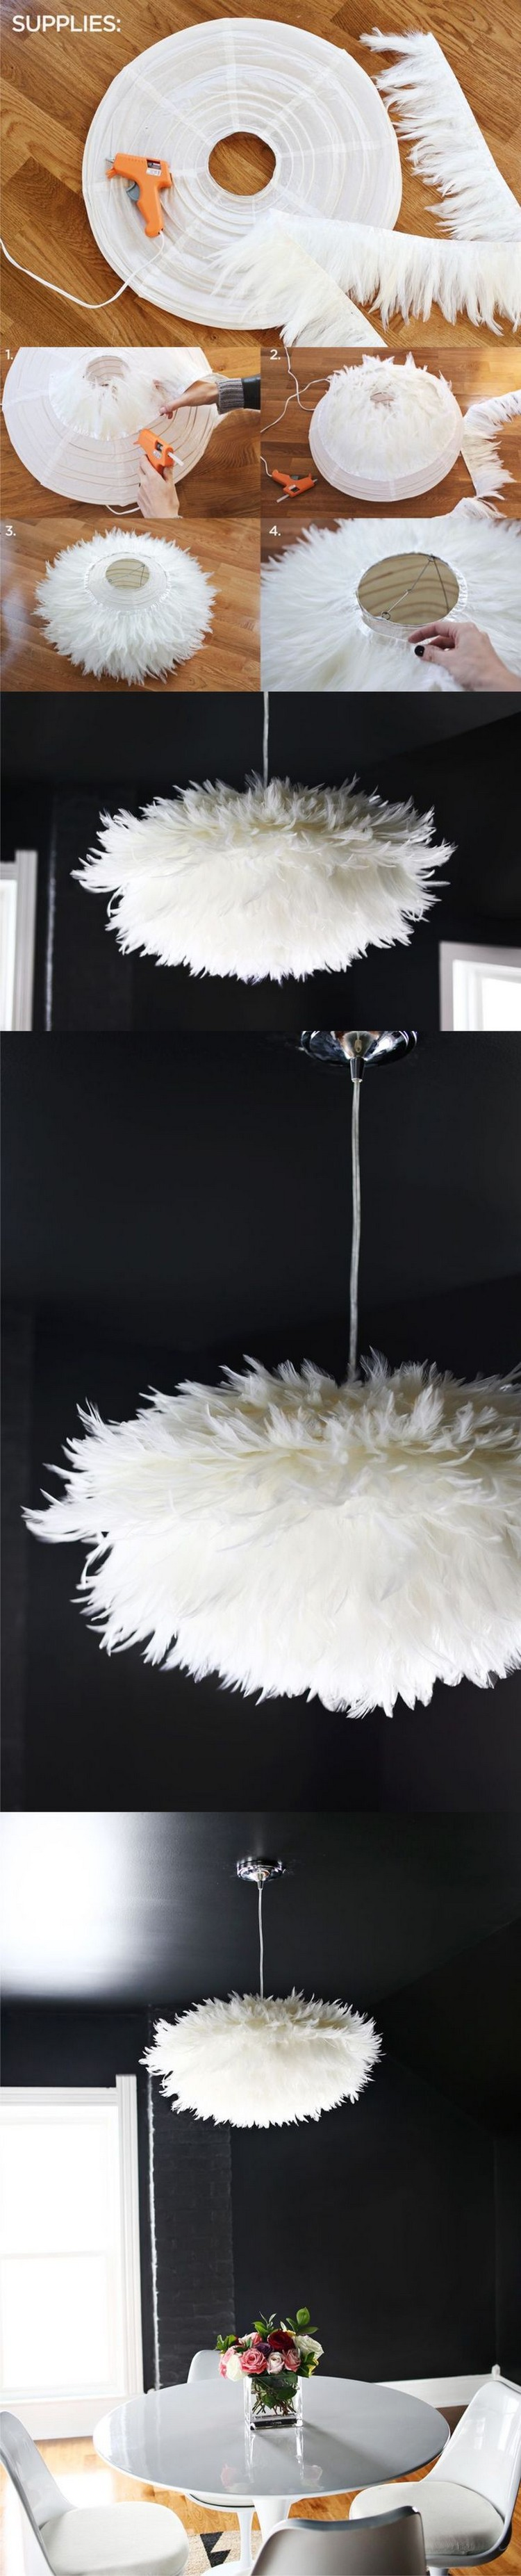 DIY White Feather Chandelier